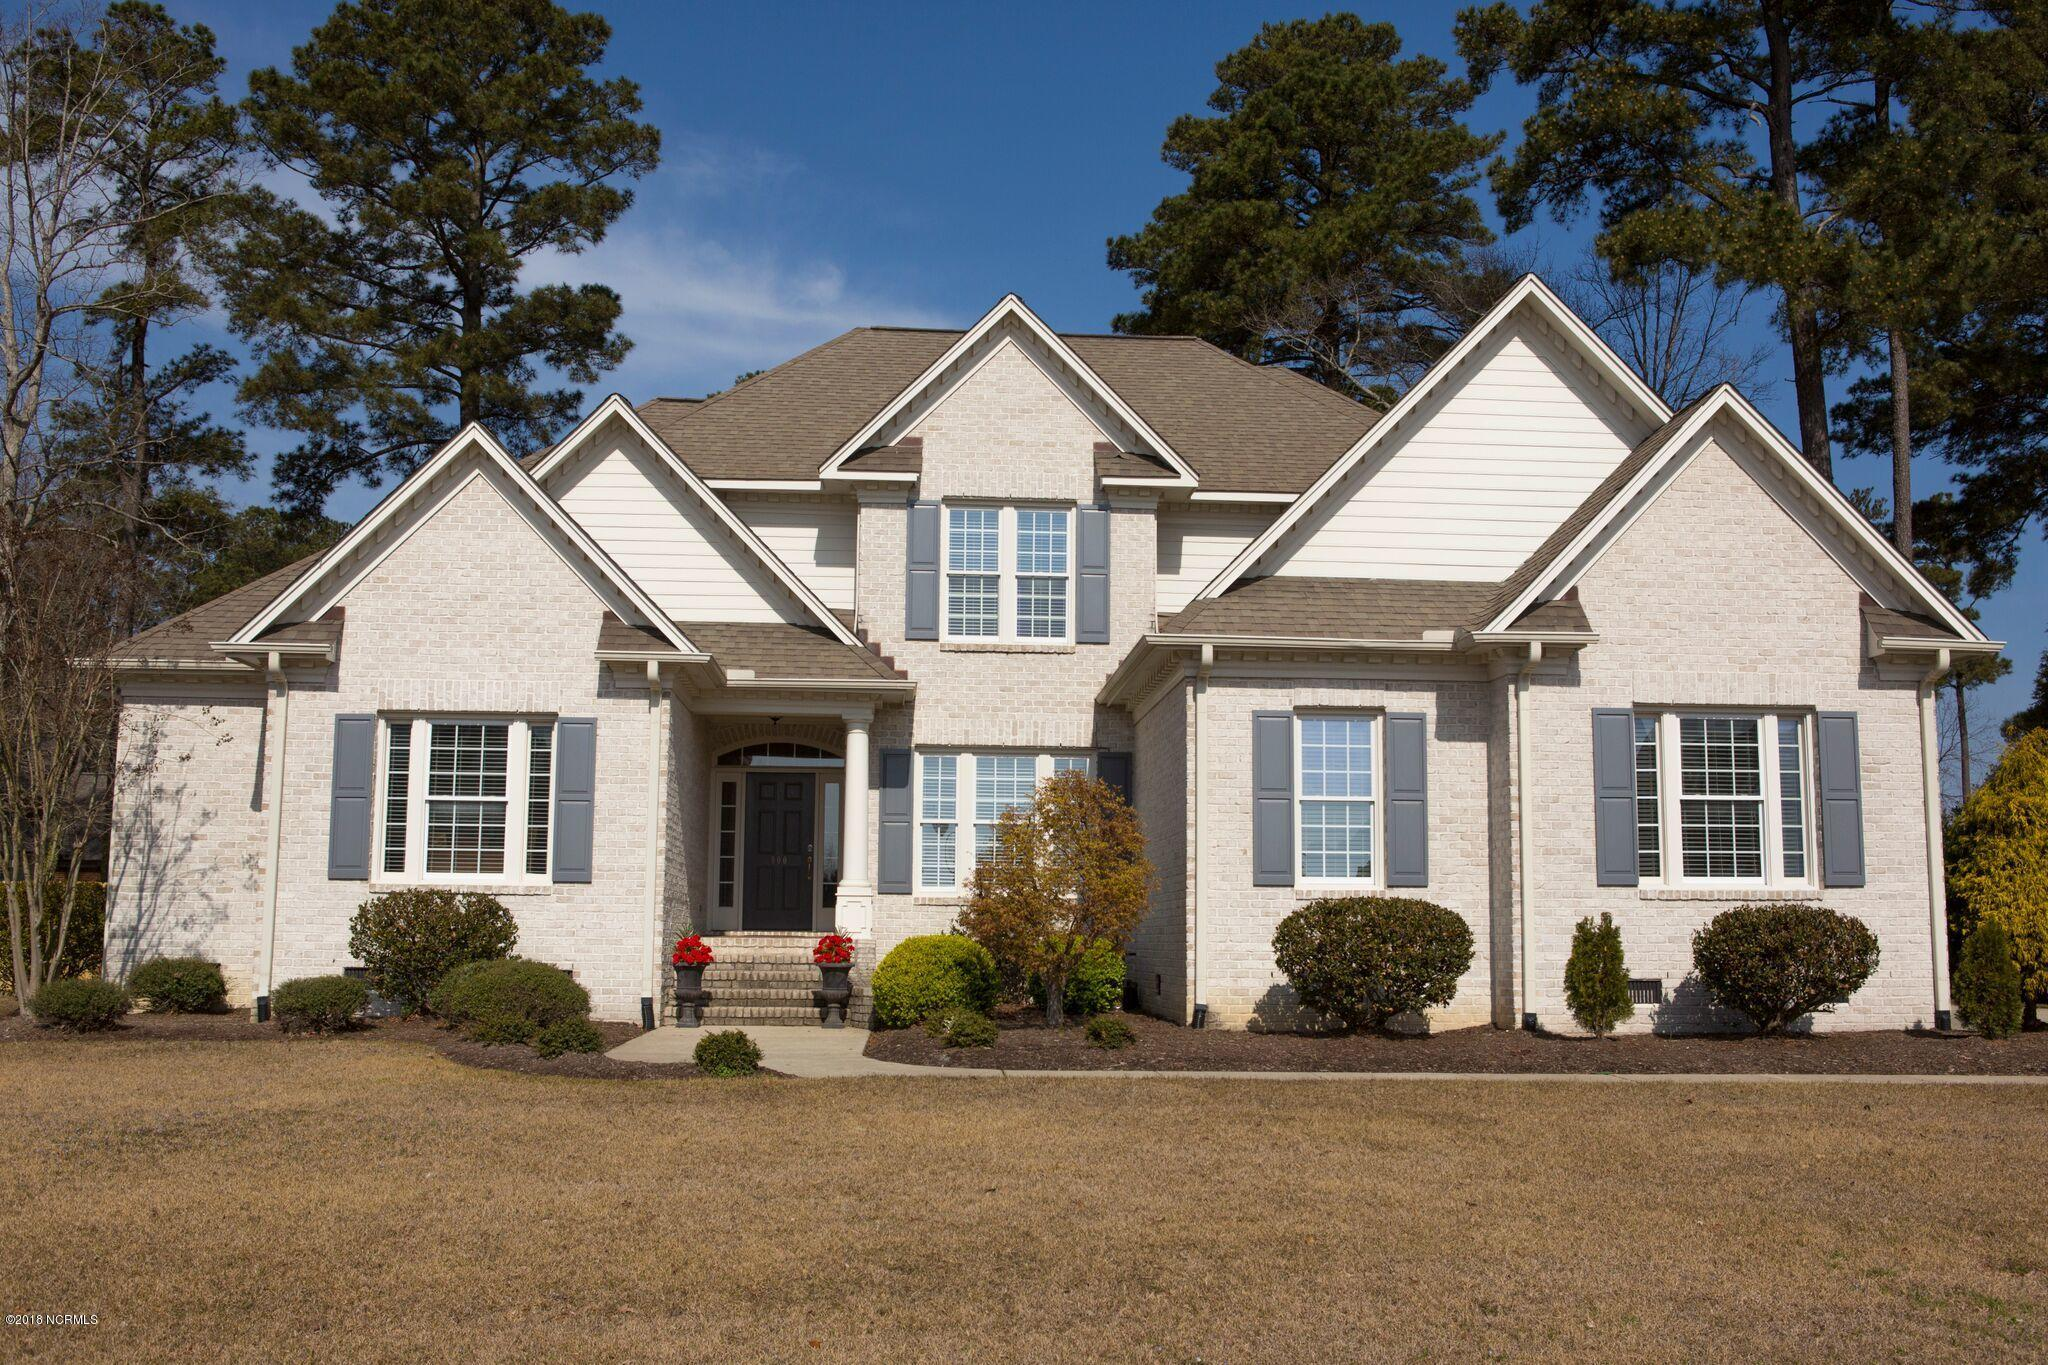 Property for sale at 900 Chesapeake Place, Greenville,  NC 27858